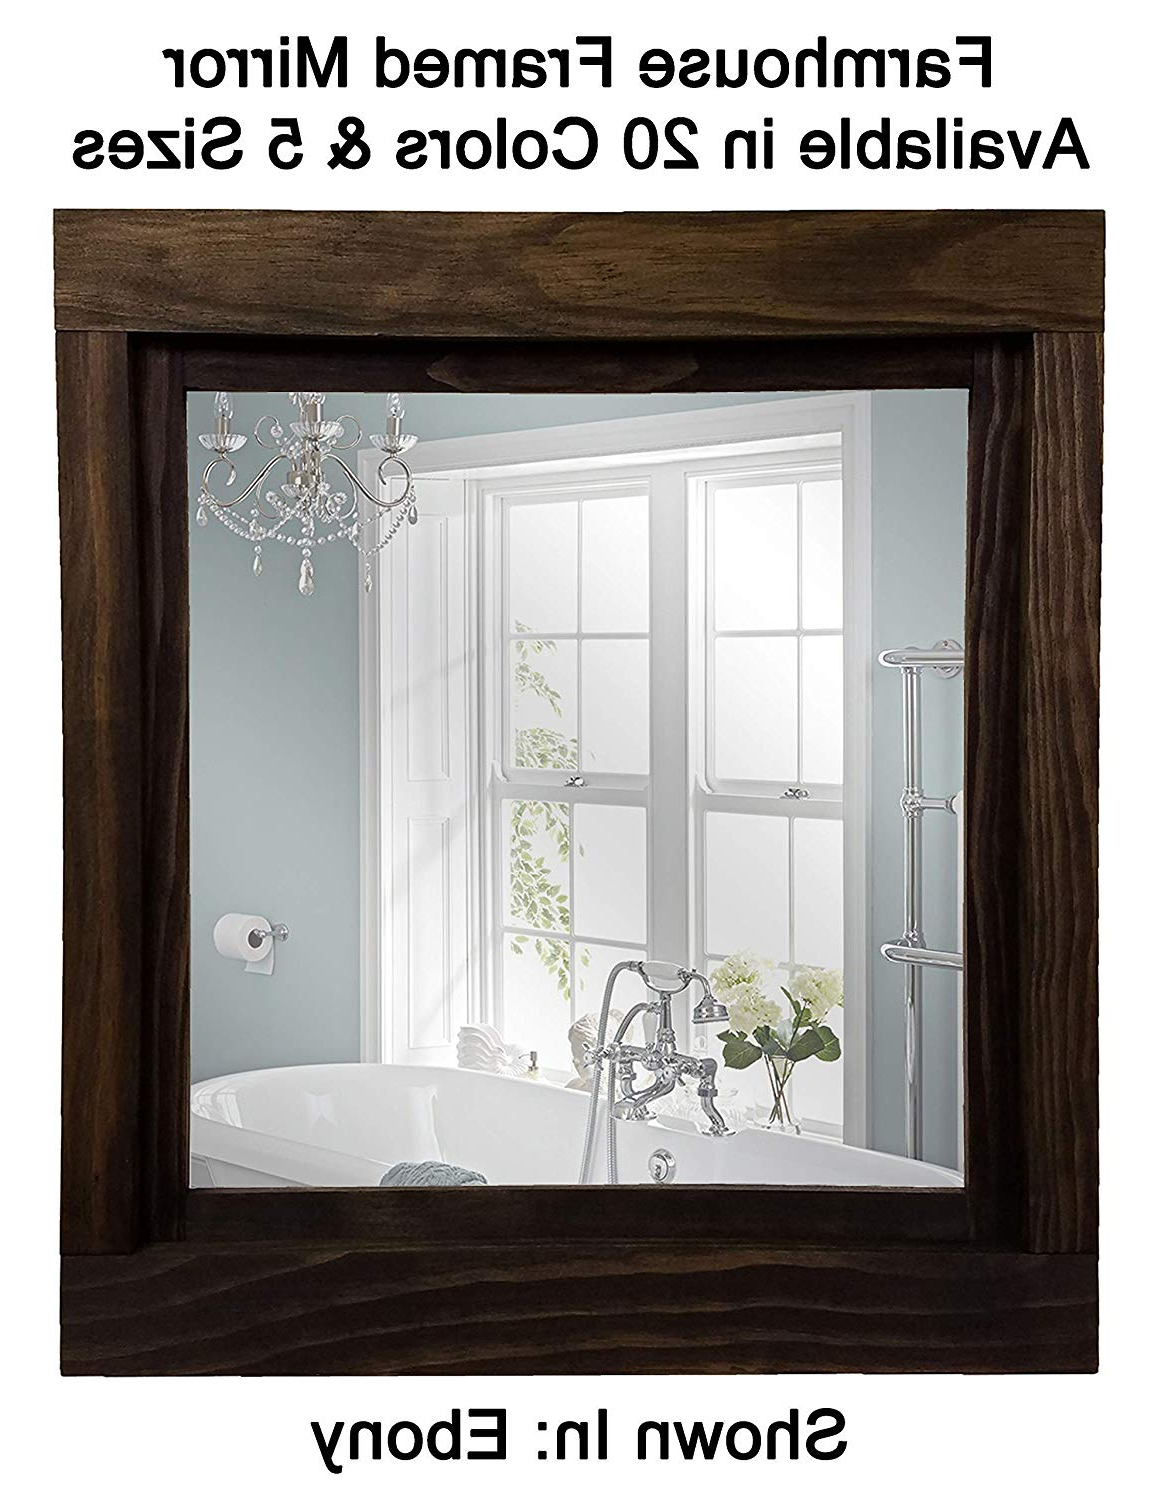 Famous Farmhouse Large Framed Mirror Available In 5 Sizes And 20 Colors: Shown In Ebony – Large Wall Mirror – Bathroom Mirror – Rustic Wall Decor – Within Large Framed Wall Mirrors (View 18 of 20)